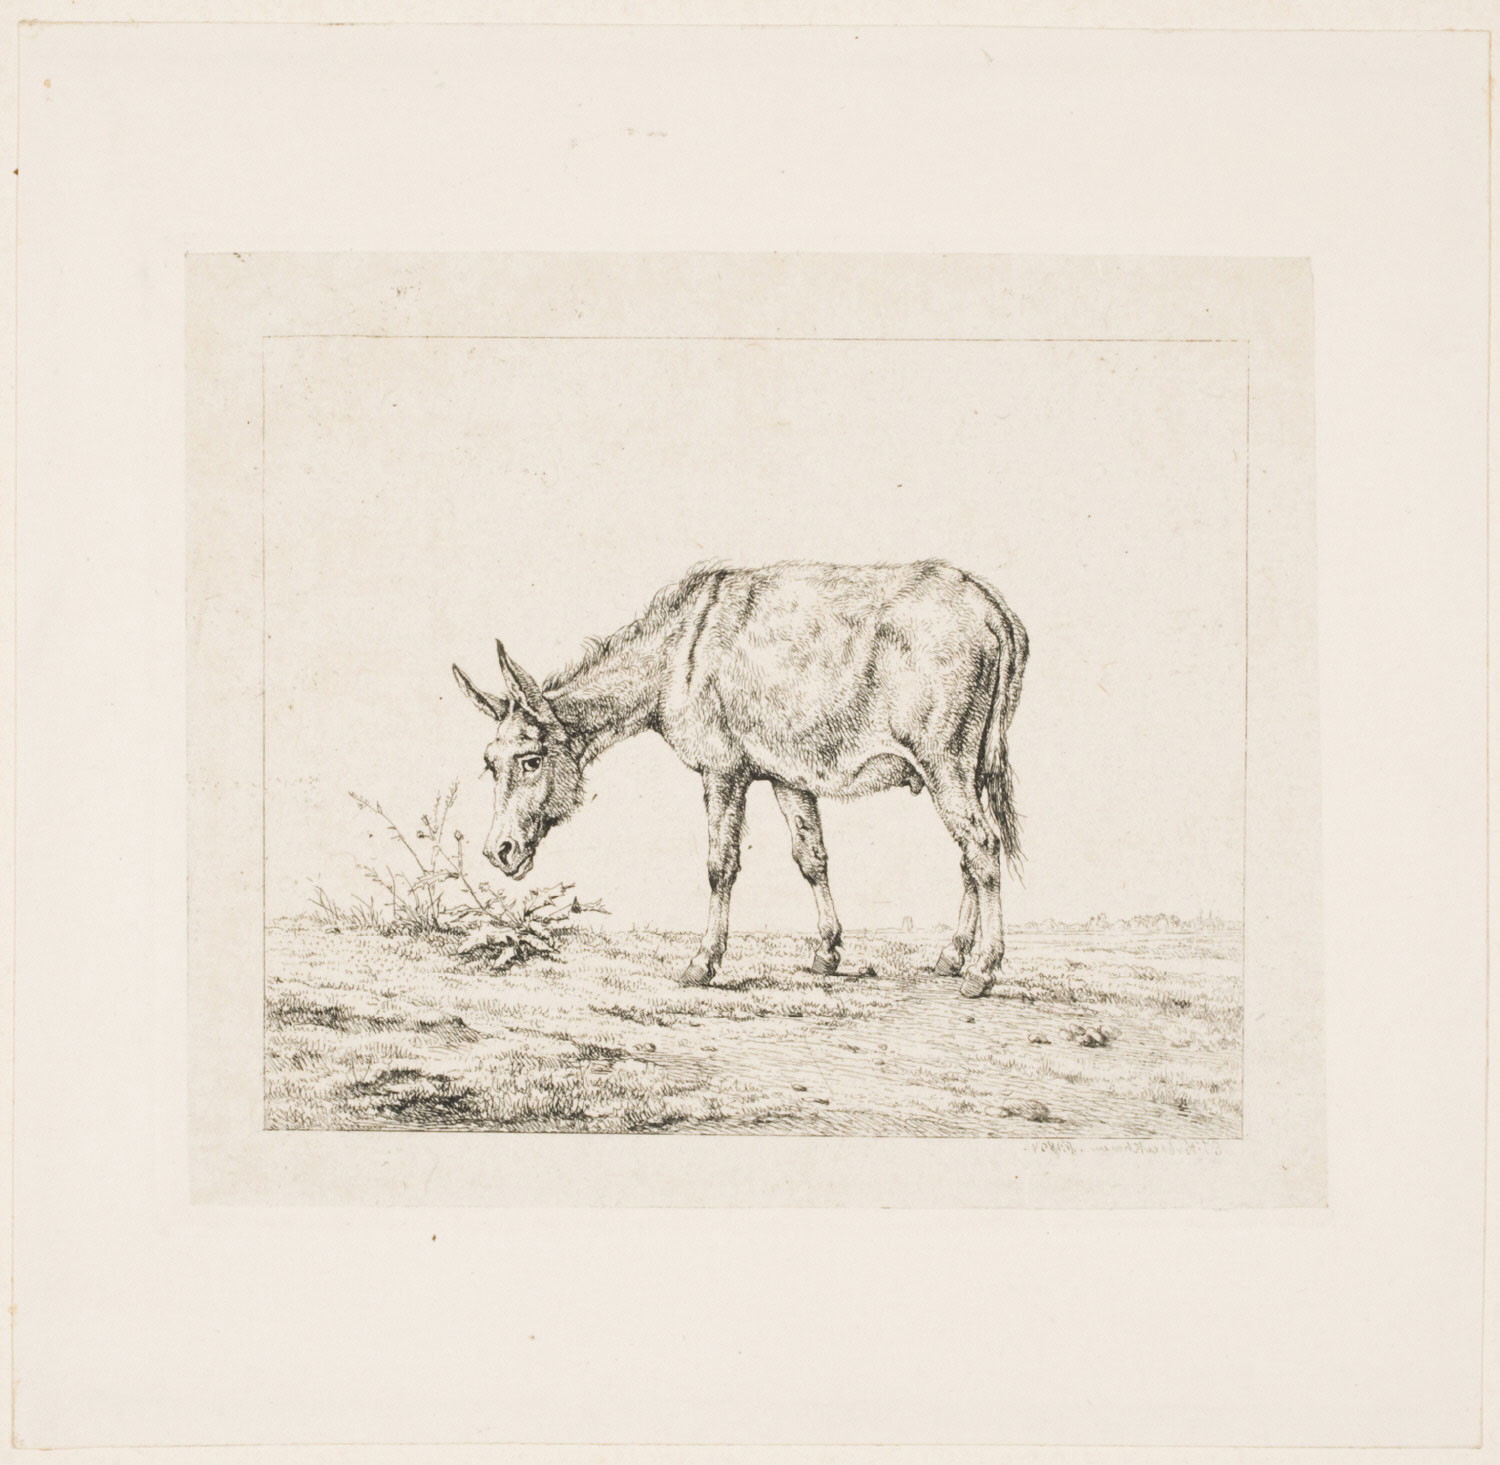 A Donkey, Facing Left